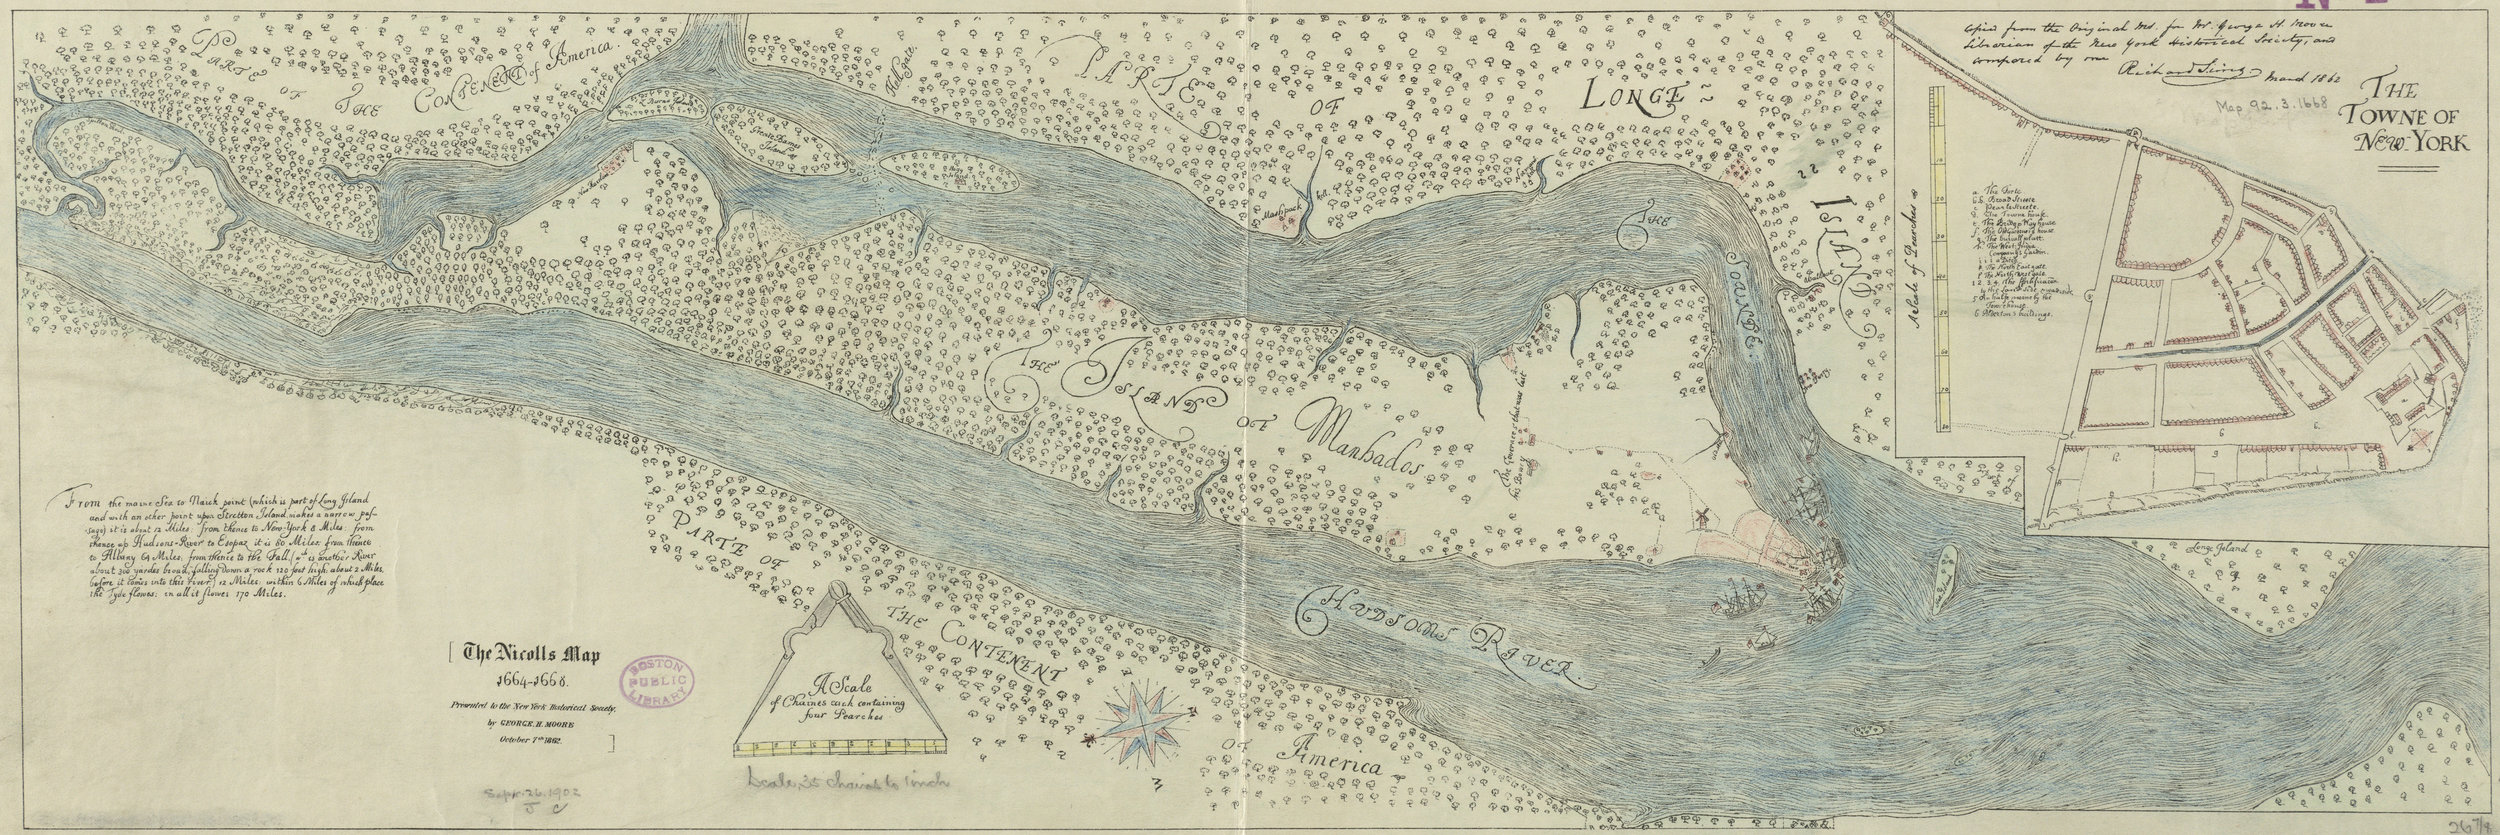 Named for the English admiral who took New Amsterdam, The Nicolls Map (ca. 1664-1668), is the first English survey of their new territory. It is often regarded as a crude map, but the English were not ones to disregard fortifications, and the map clearly shows only two small bastions left along the wall and no western wall. The original is in the British Library. This hand-colored reprint was made from a copy by George Henry Moore and Richard Sims in 1862, for the New York Historical Society. Courtesy  Boston Public Library .